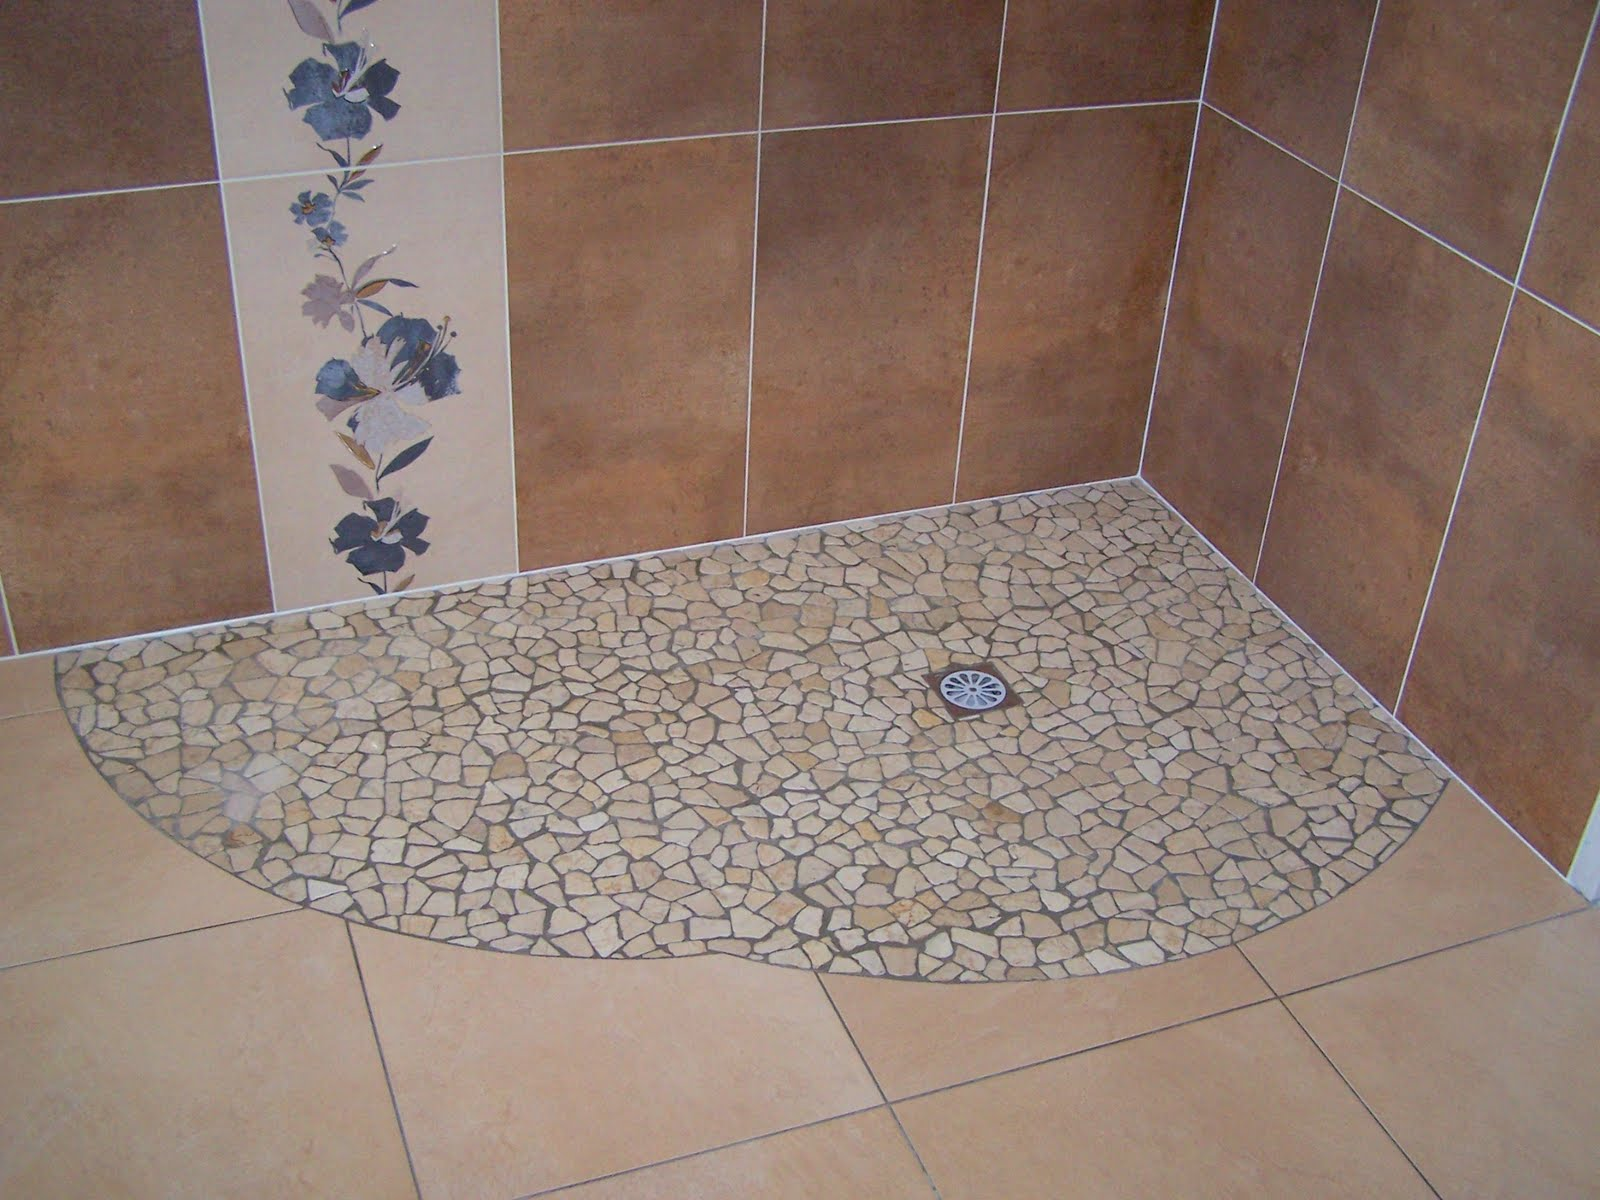 Carrelage antid rapant pour douche for Carrelage antiderapant